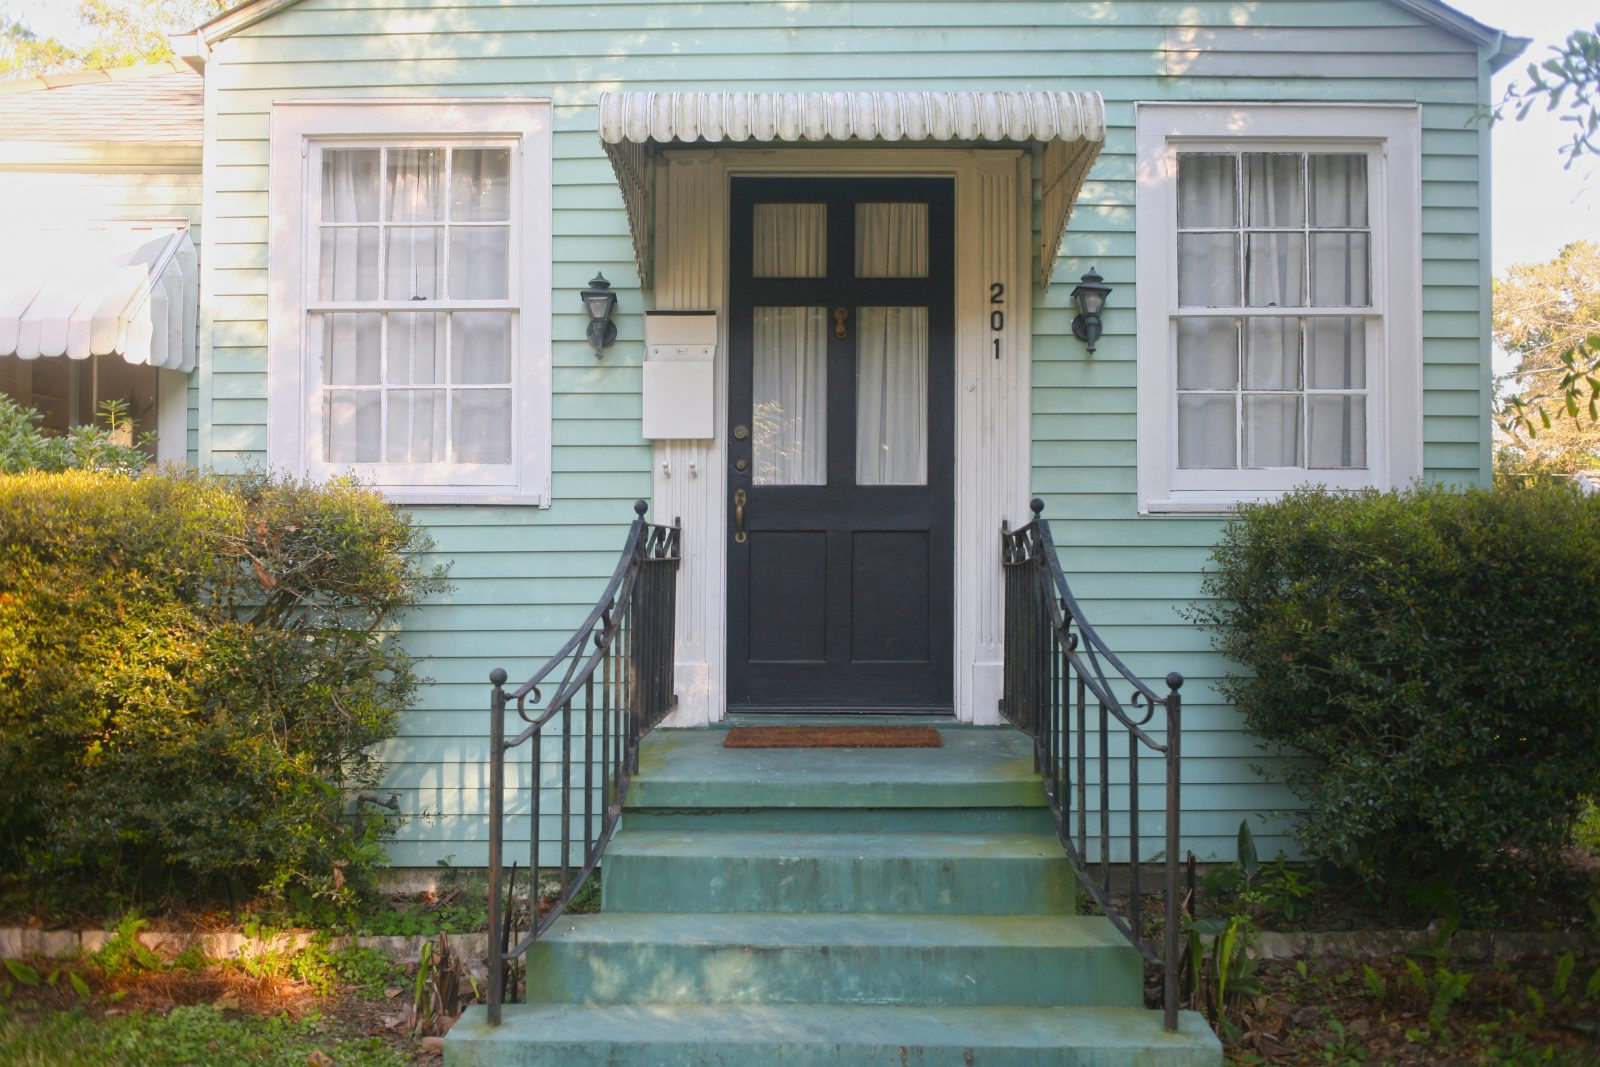 It's unanimous: Jefferson council votes to ban rentals like Airbnb in residential areas - Sponsored legislation to prohibit short-term rental activity